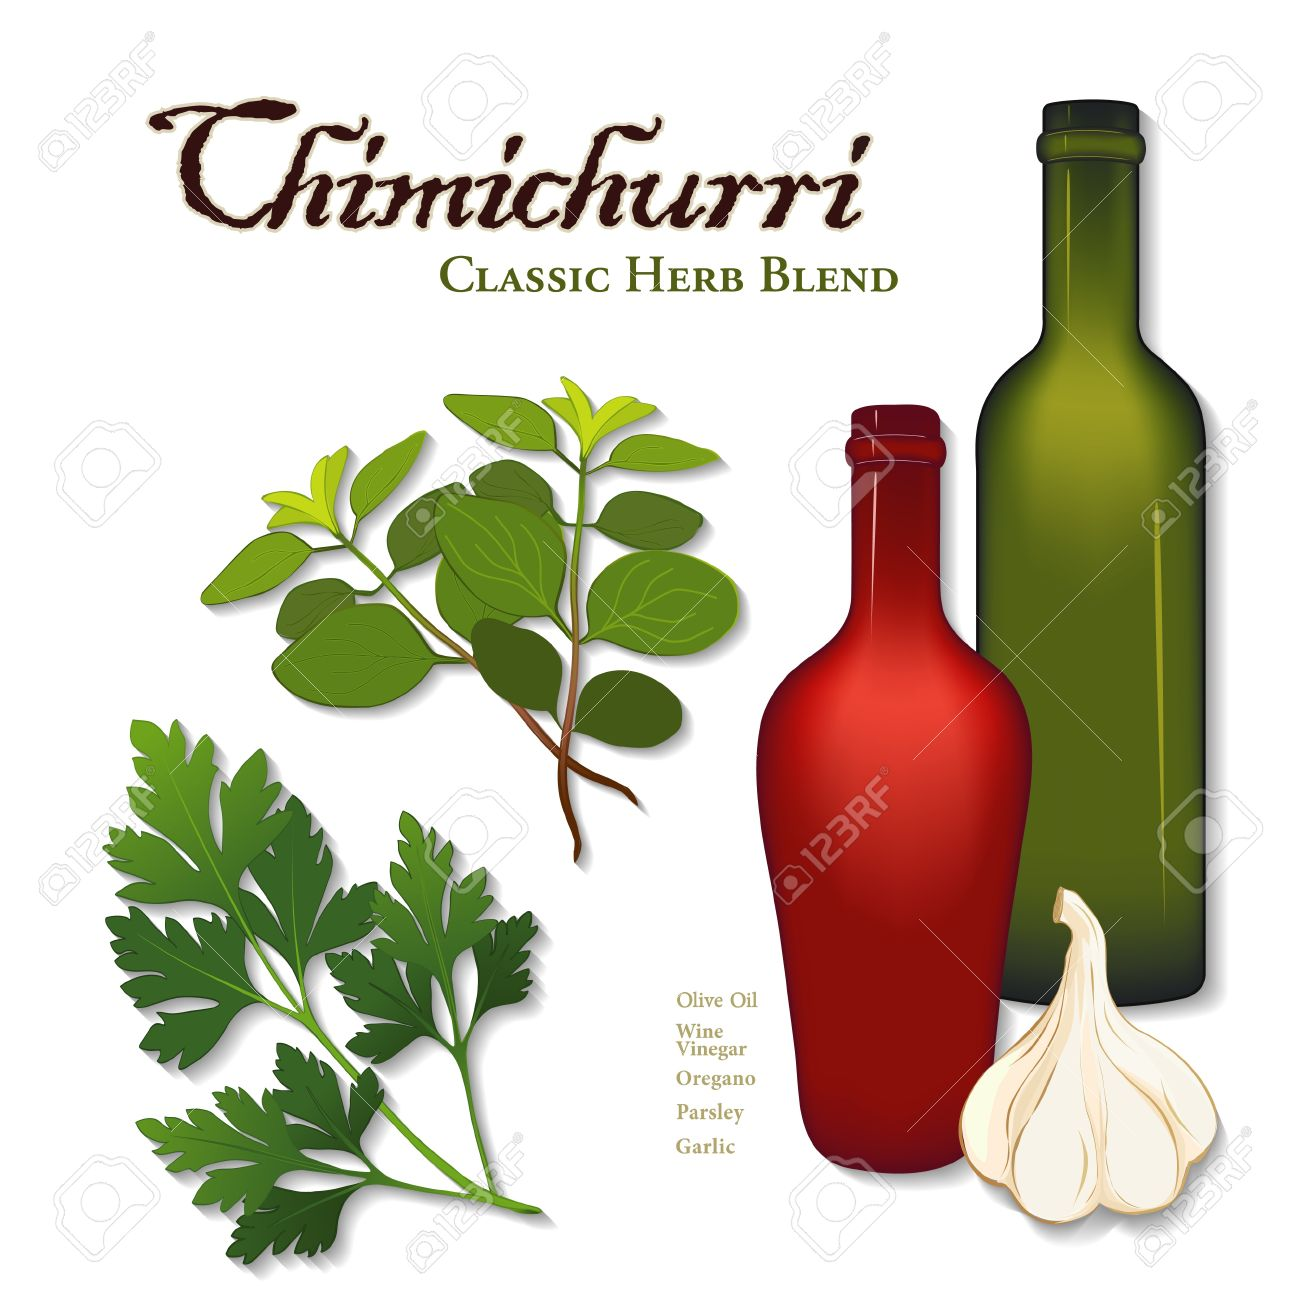 Chimichurri, Popular Herb Seasoning Sauce From Argentina For.